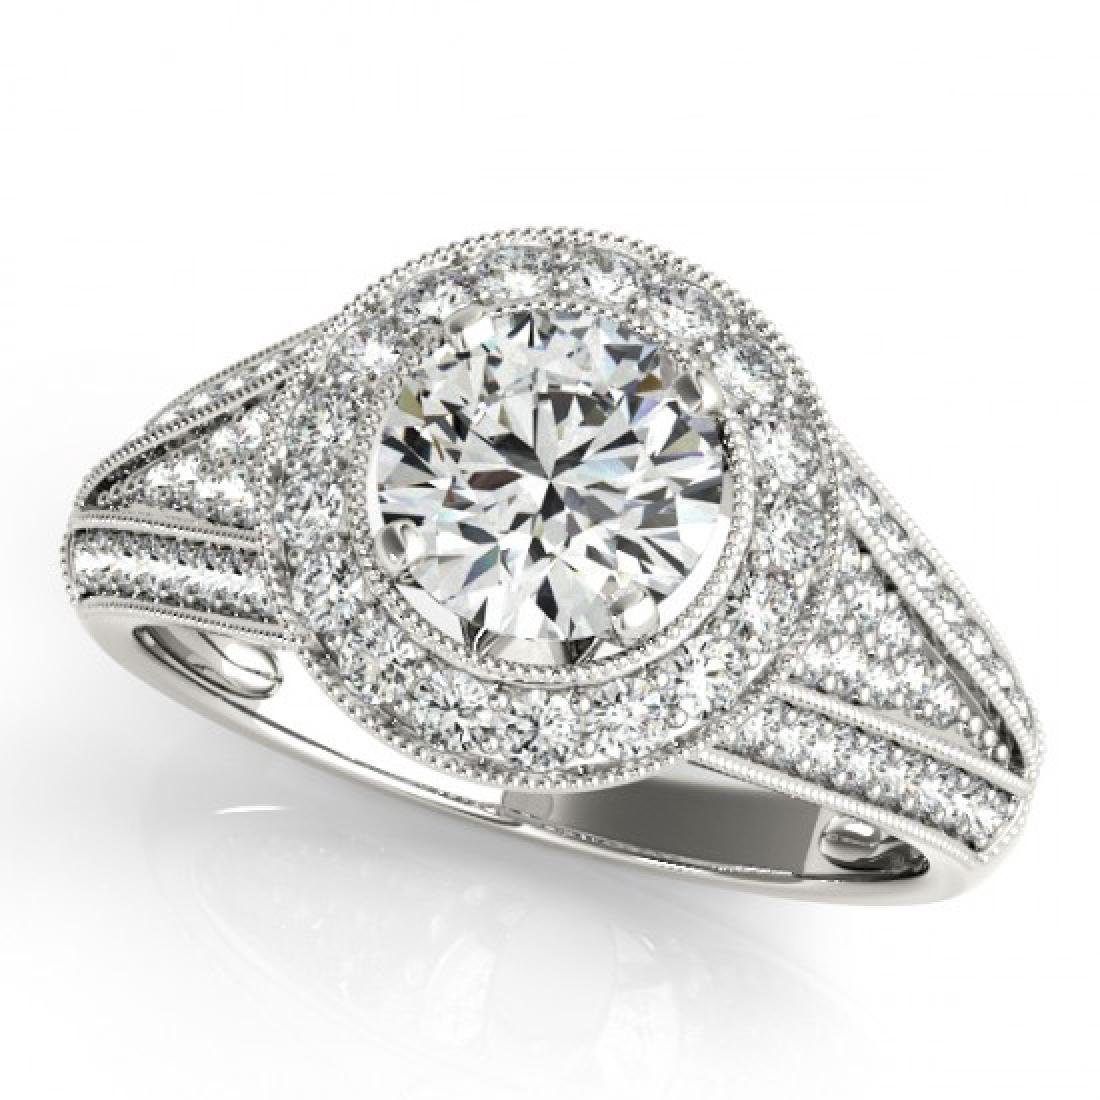 1.7 CTW Certified VS/SI Diamond Solitaire Halo Ring 18K